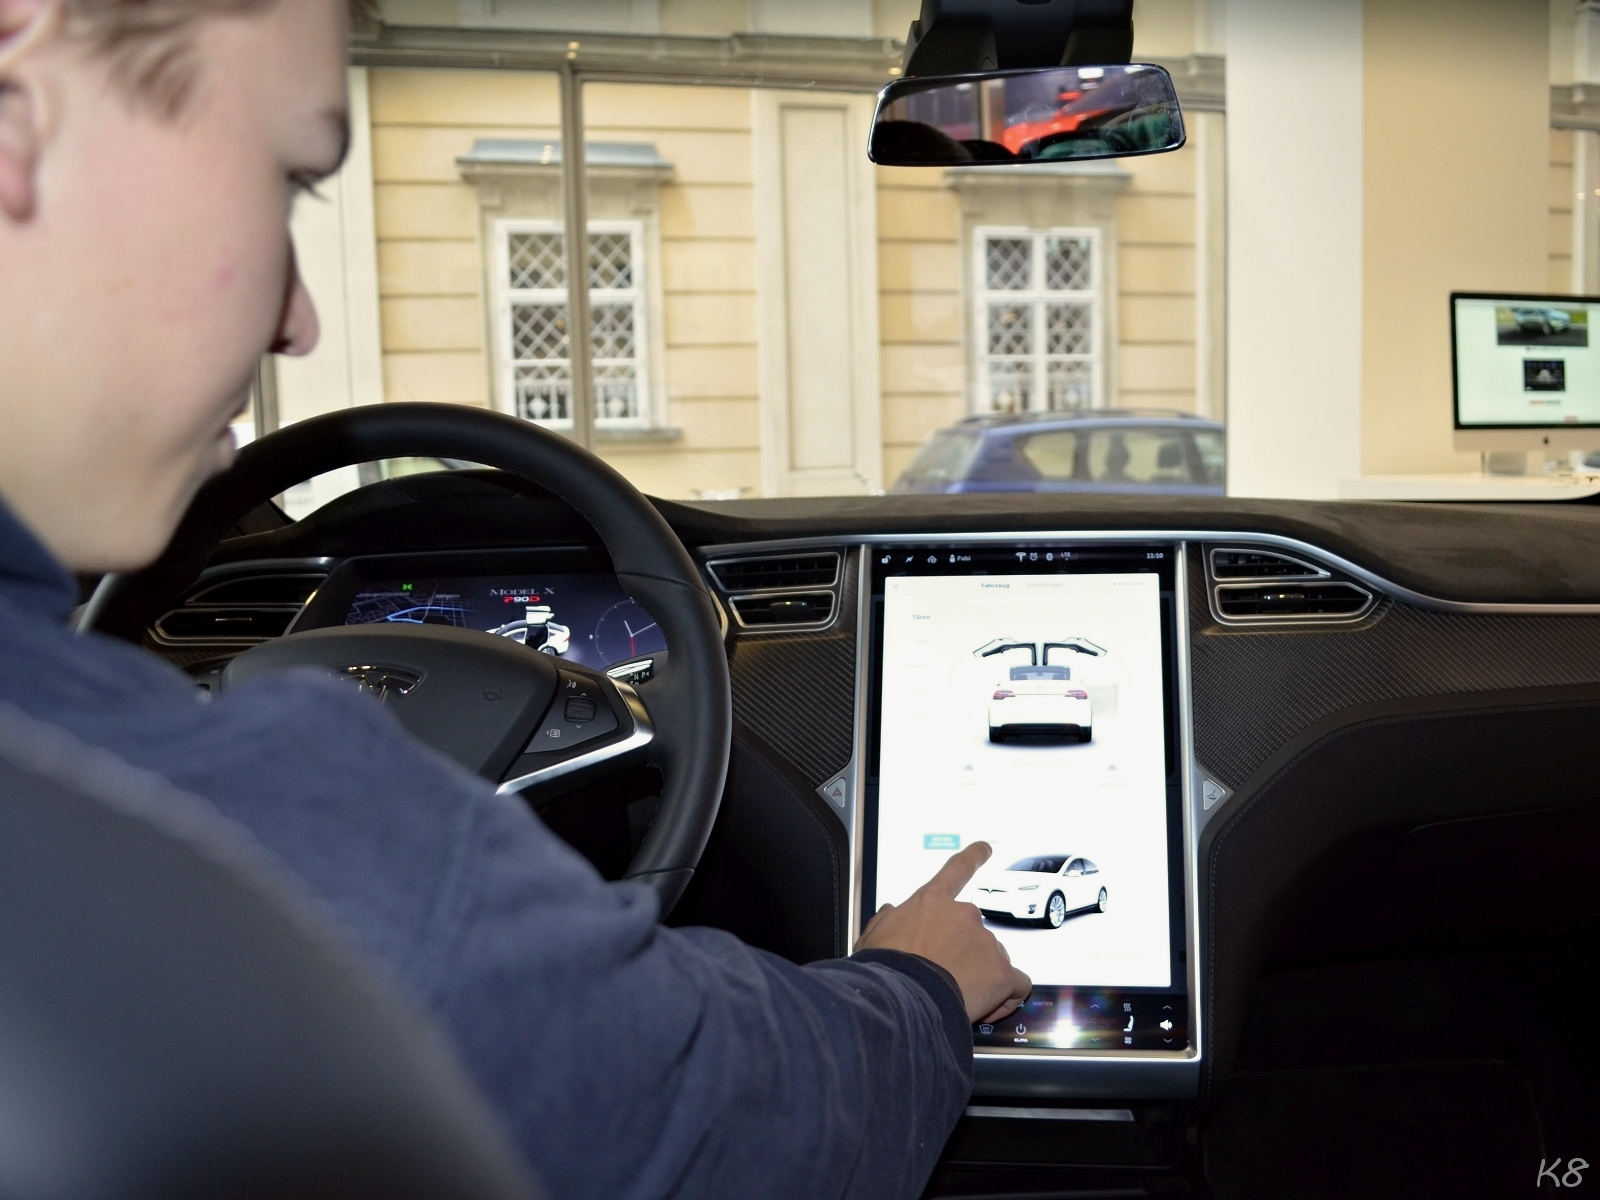 Tesla Model X Touchscreen